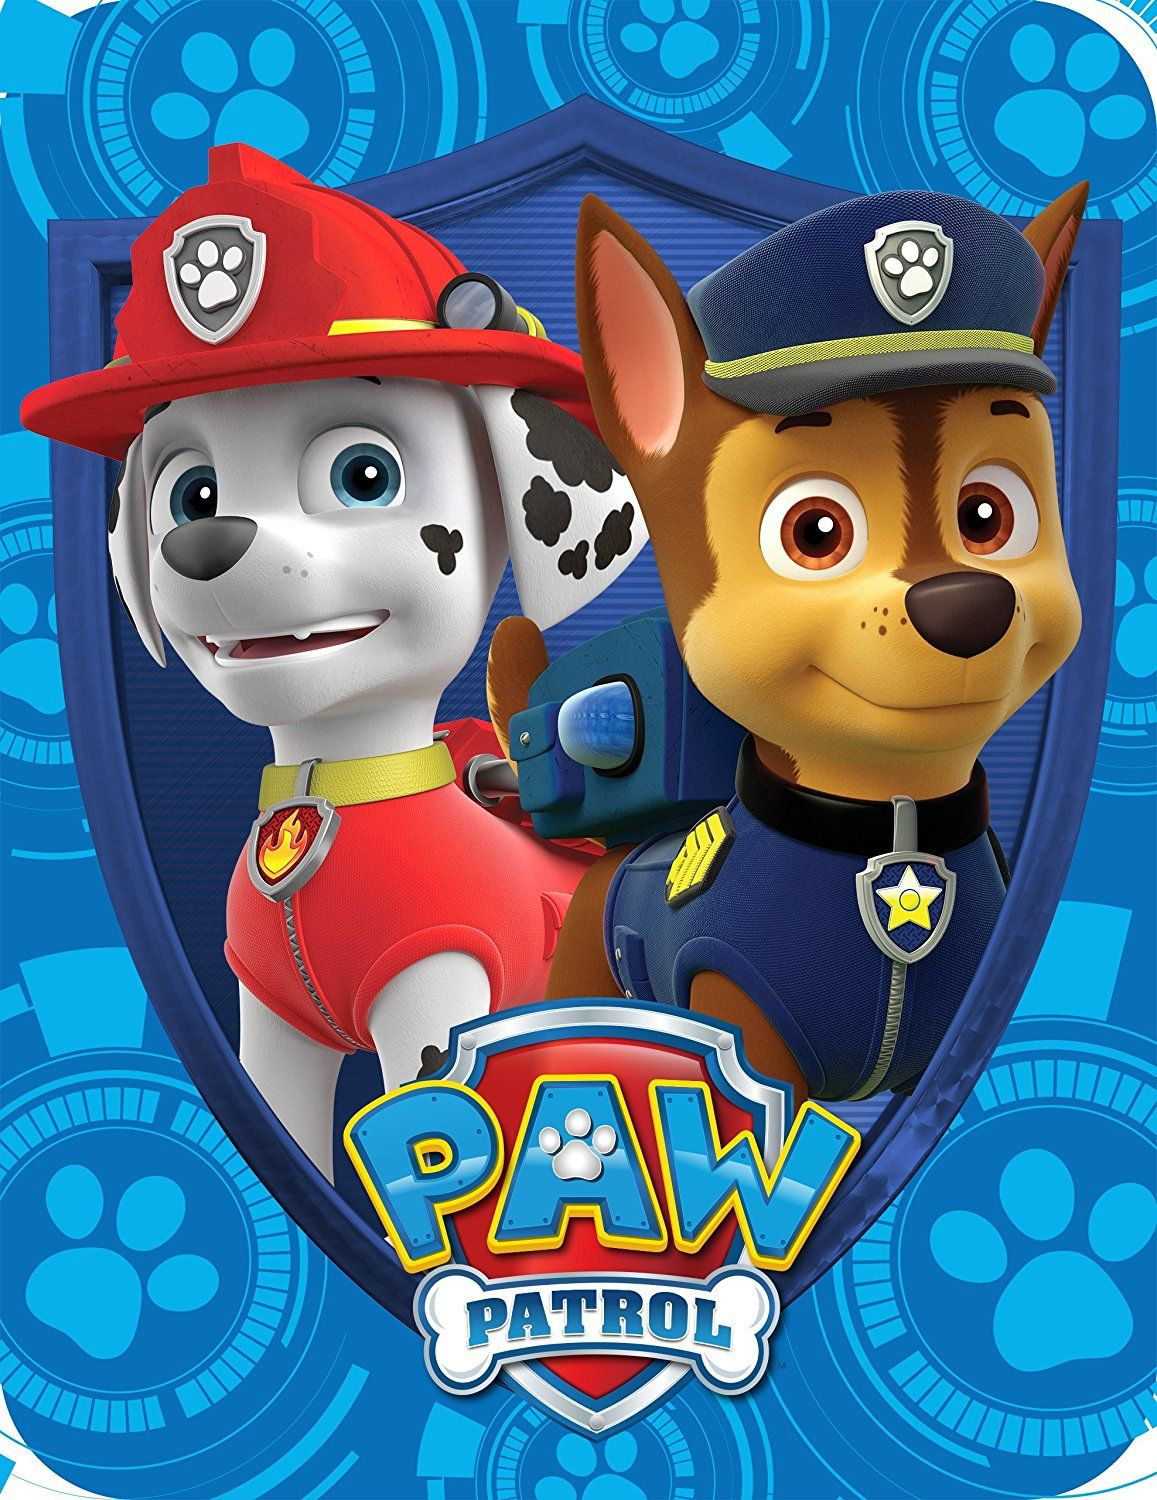 Quatang Gallery- Nick Jr Paw Patrol Yelp For Help Micro Raschel Throw 46 By 60 Inch Cumpleanos Patrulla Canina Decoracion La Patrulla Canina Cumpleanos Imprimibles Paw Patrol